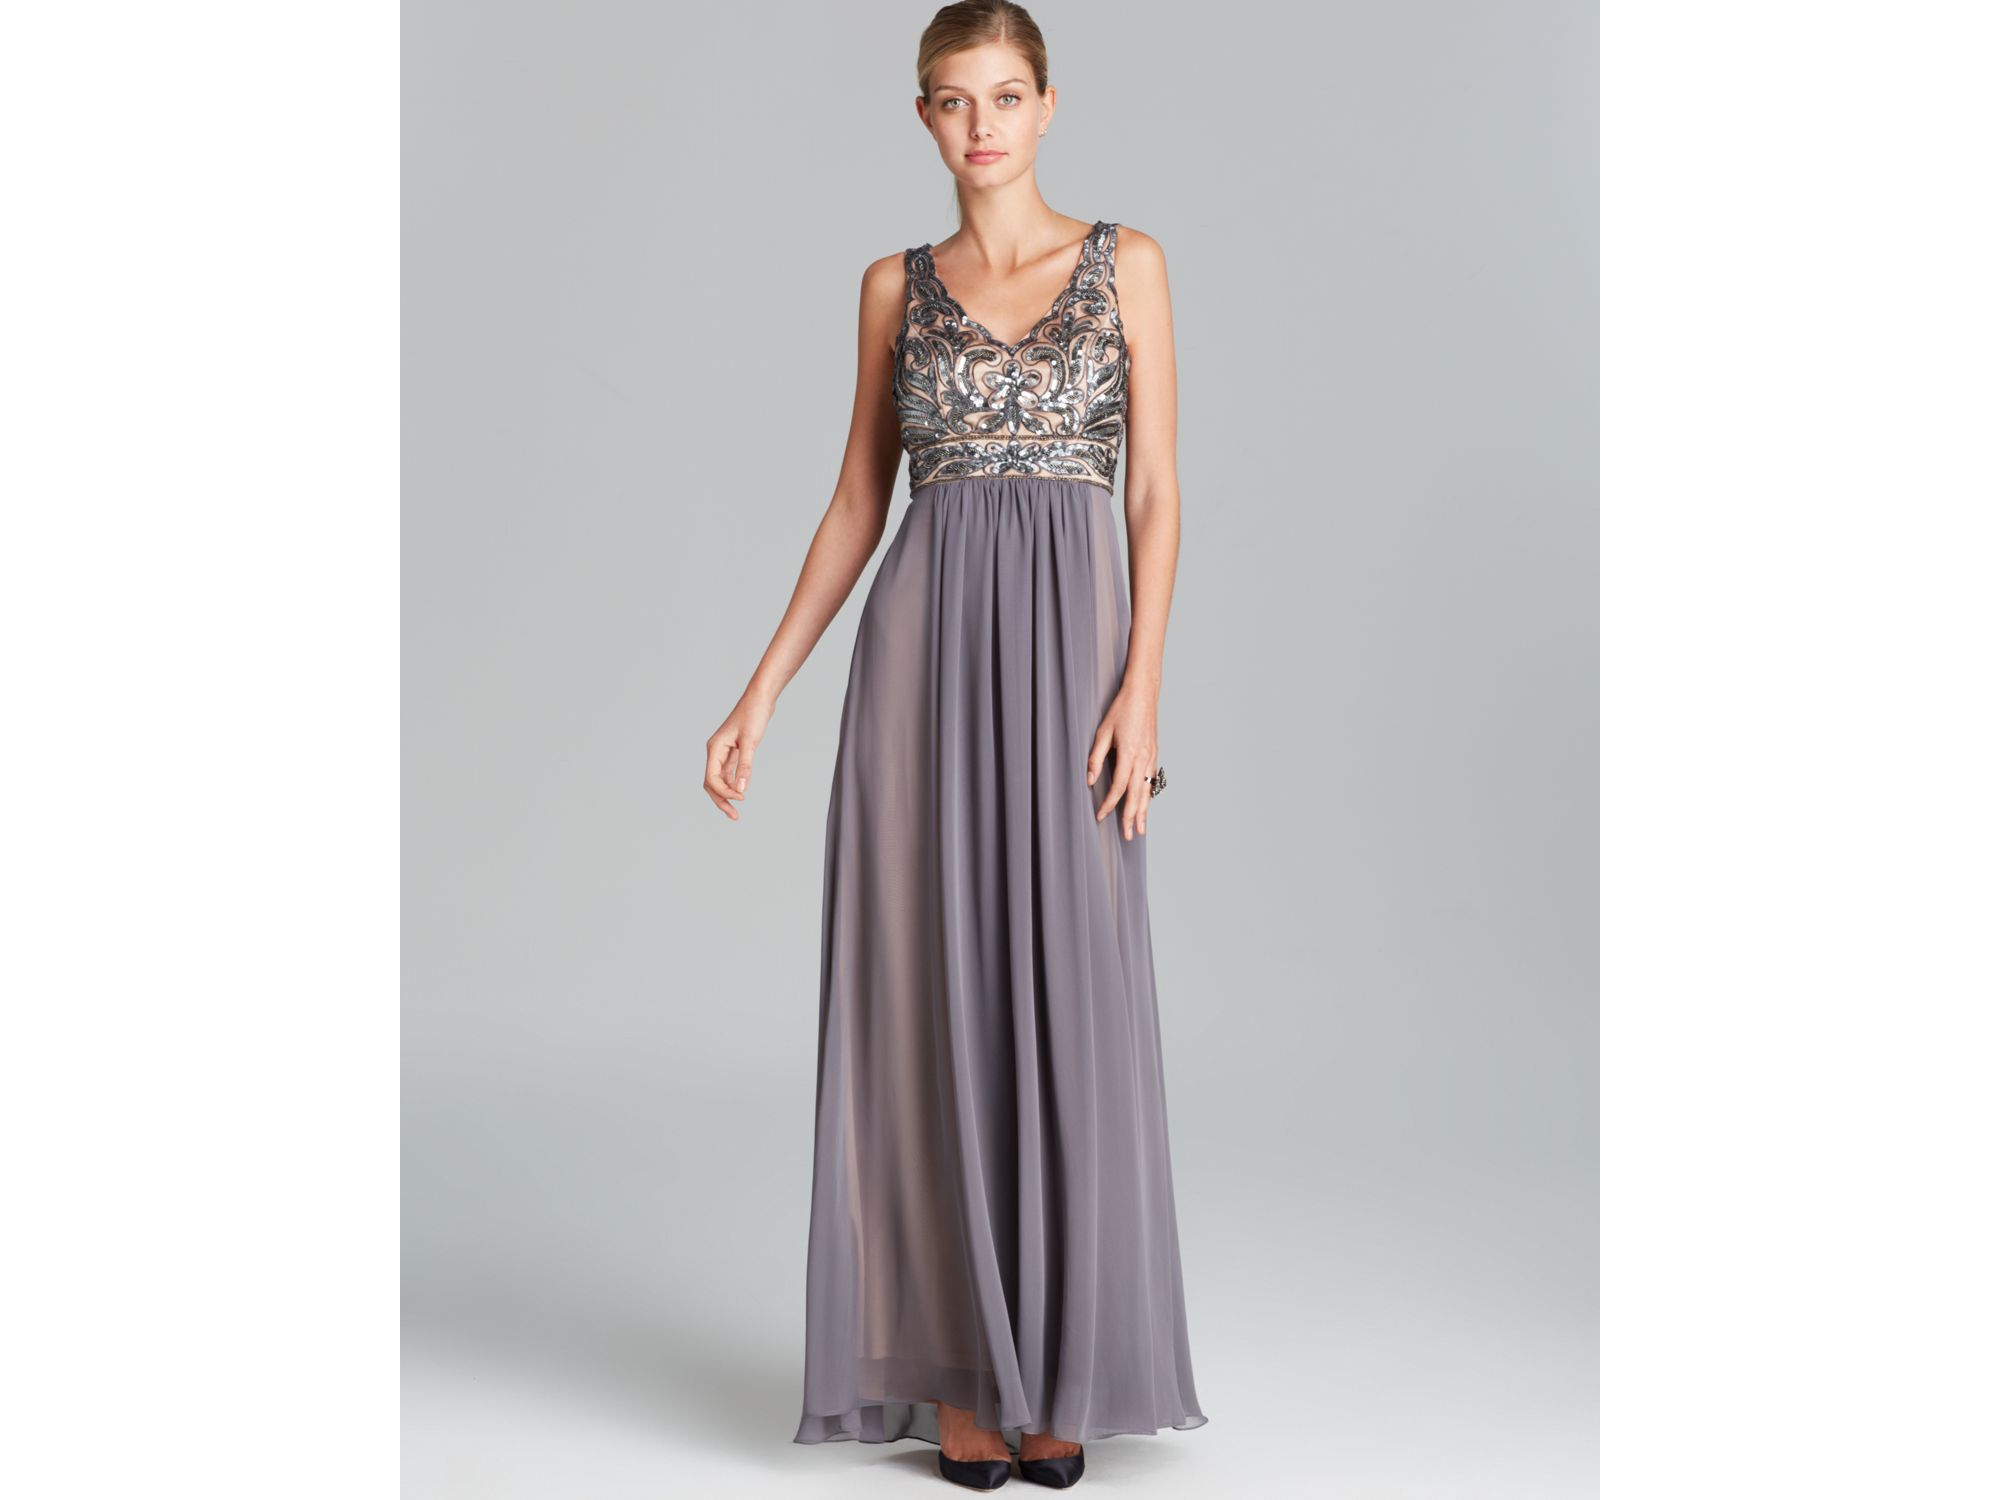 Stunning Bloomingdales Evening Gowns Long Gallery Wedding And